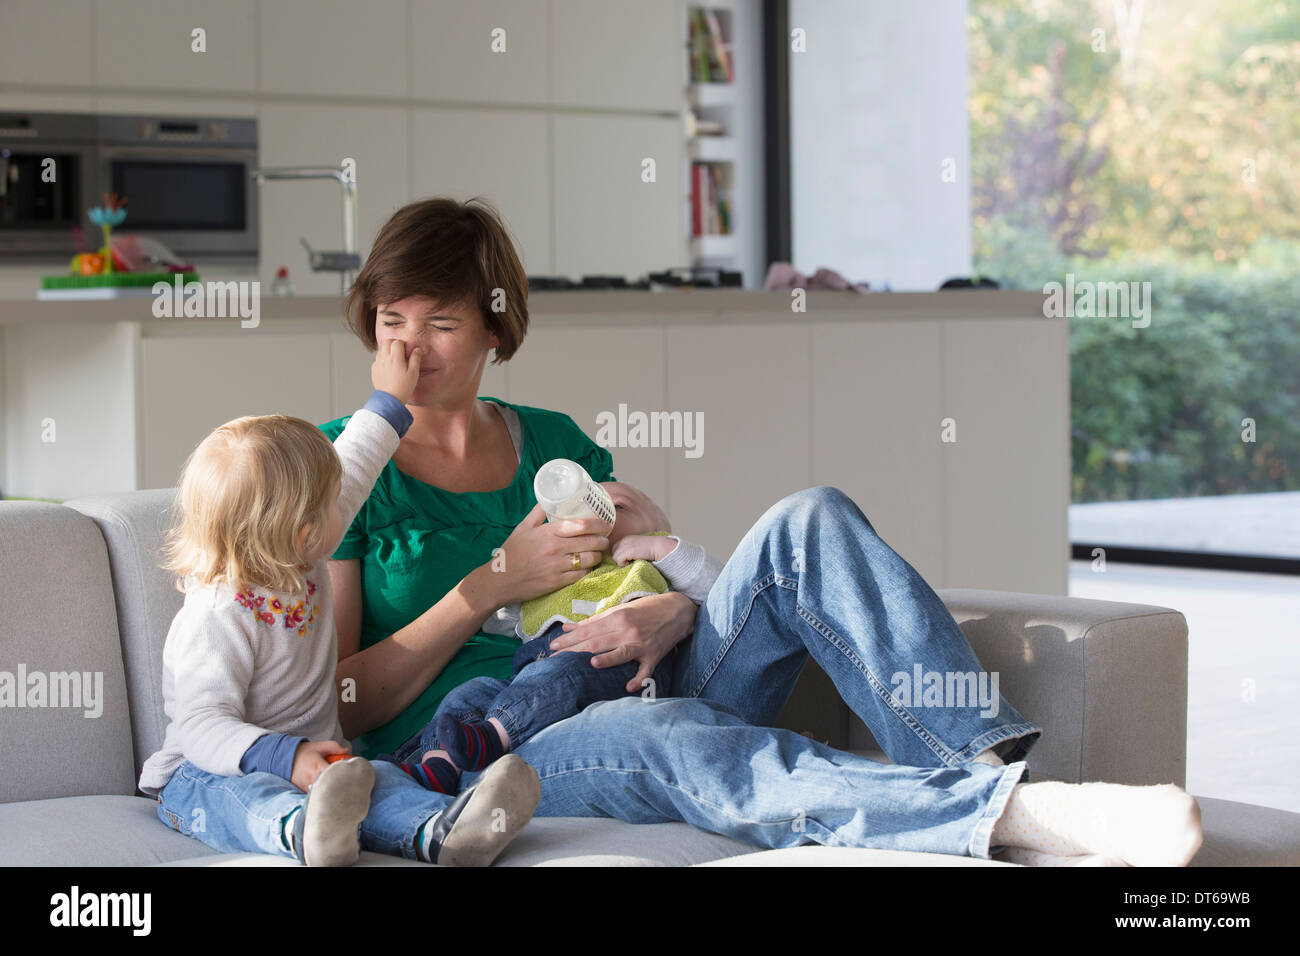 Mother, baby boy and female toddler sitting on sofa - Stock Image